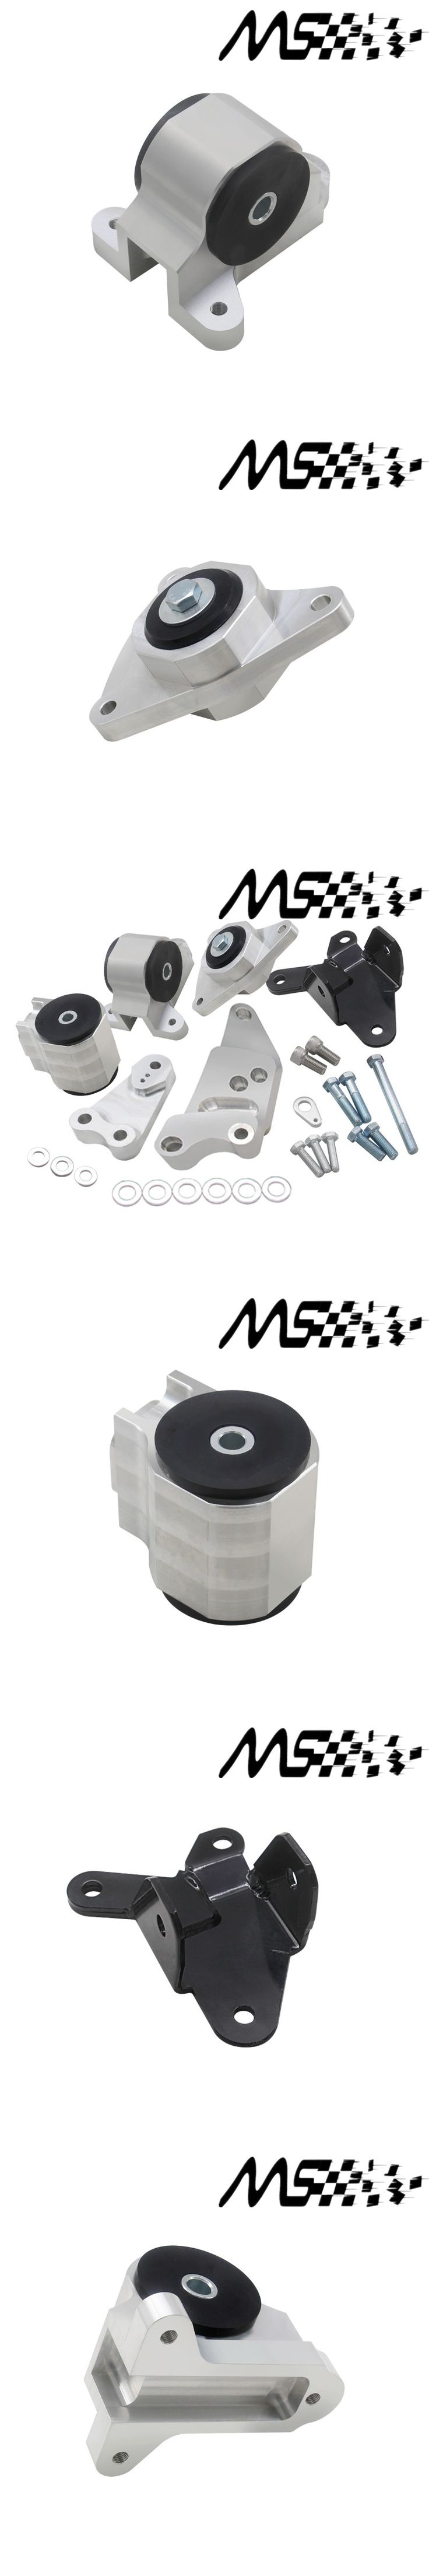 New Replacement Engine Swap Mount Kit For HONDA CIVIC SI 02-06 ACURA RSX 70A MOTOR ENGINE MOUNTS K20 DC5 EP3 with logo